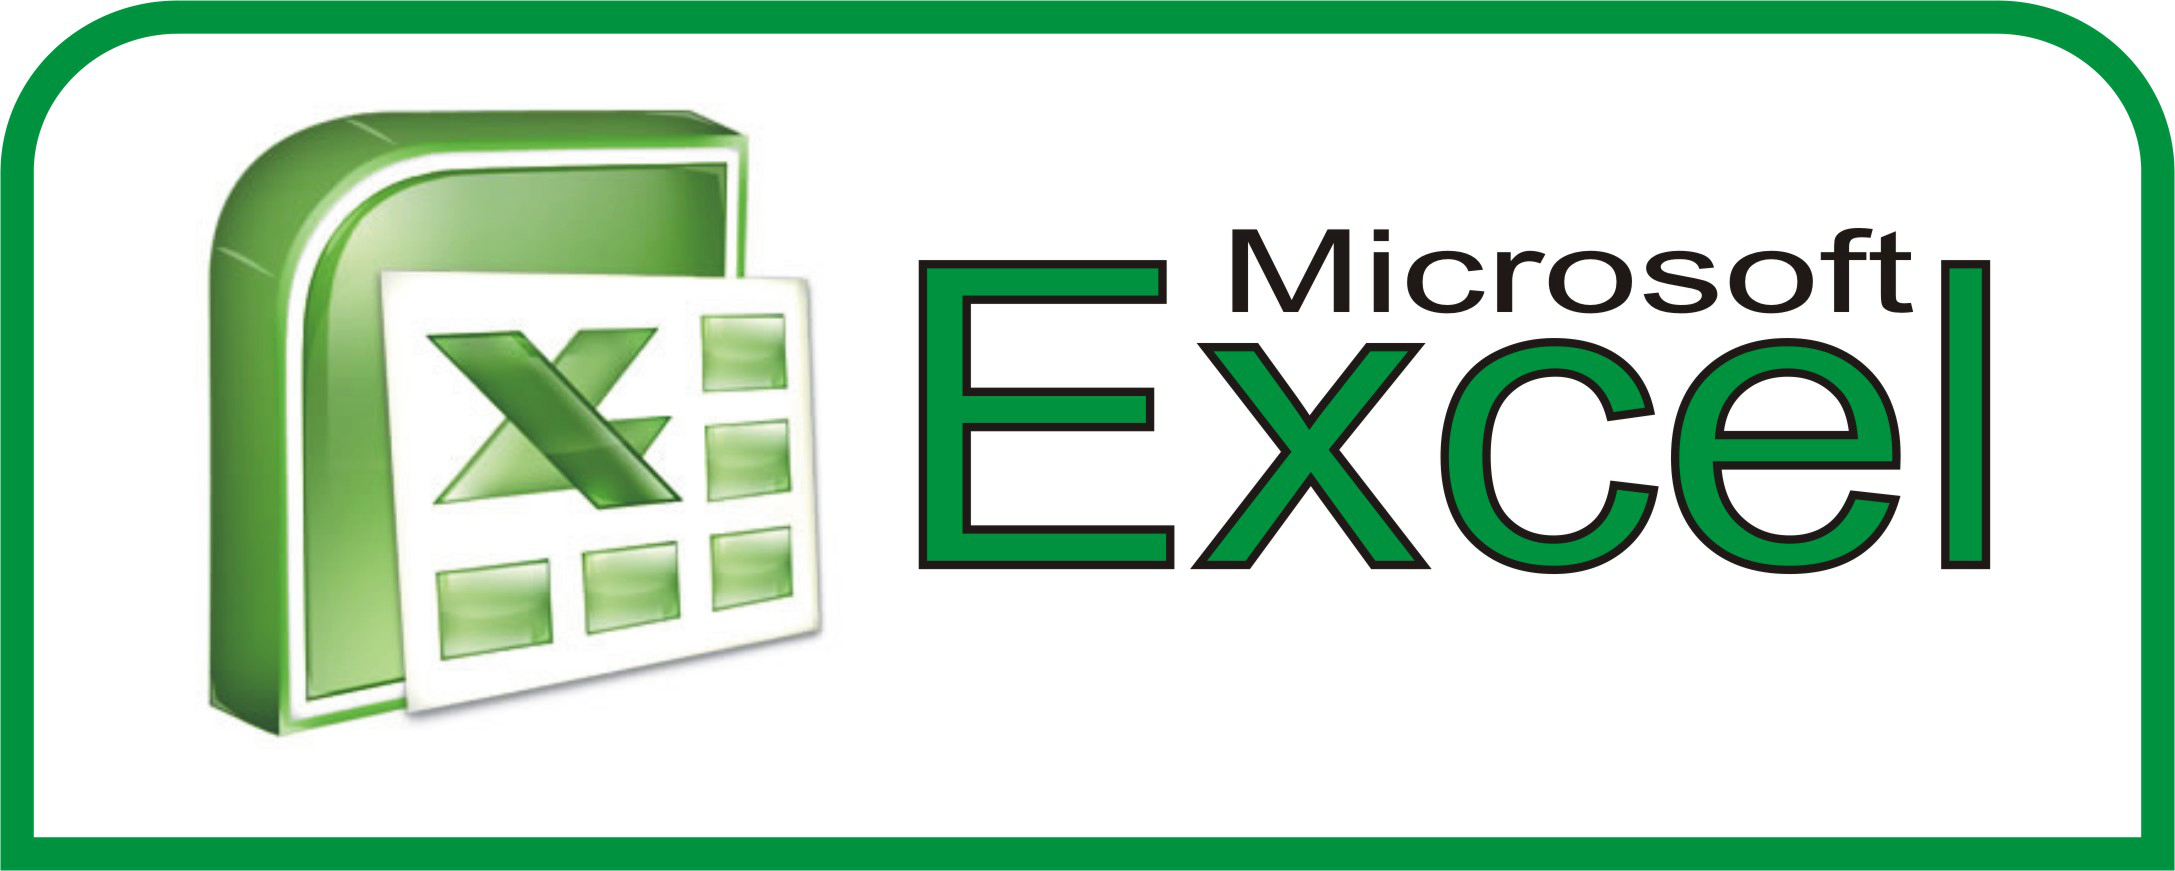 Ediblewildsus  Outstanding  Excel Shortcuts You Probably Didnt Know About  Techdissected With Licious Binomial Coefficient Excel Besides Macro En Excel Furthermore How To Get Free Excel With Delightful Open Xml Excel Also Excel Schedule Formula In Addition Megastat Download For Excel  And If Excel And As Well As Excel Tutorial Macros Additionally How To Make If Statement In Excel From Techdissectedcom With Ediblewildsus  Licious  Excel Shortcuts You Probably Didnt Know About  Techdissected With Delightful Binomial Coefficient Excel Besides Macro En Excel Furthermore How To Get Free Excel And Outstanding Open Xml Excel Also Excel Schedule Formula In Addition Megastat Download For Excel  From Techdissectedcom